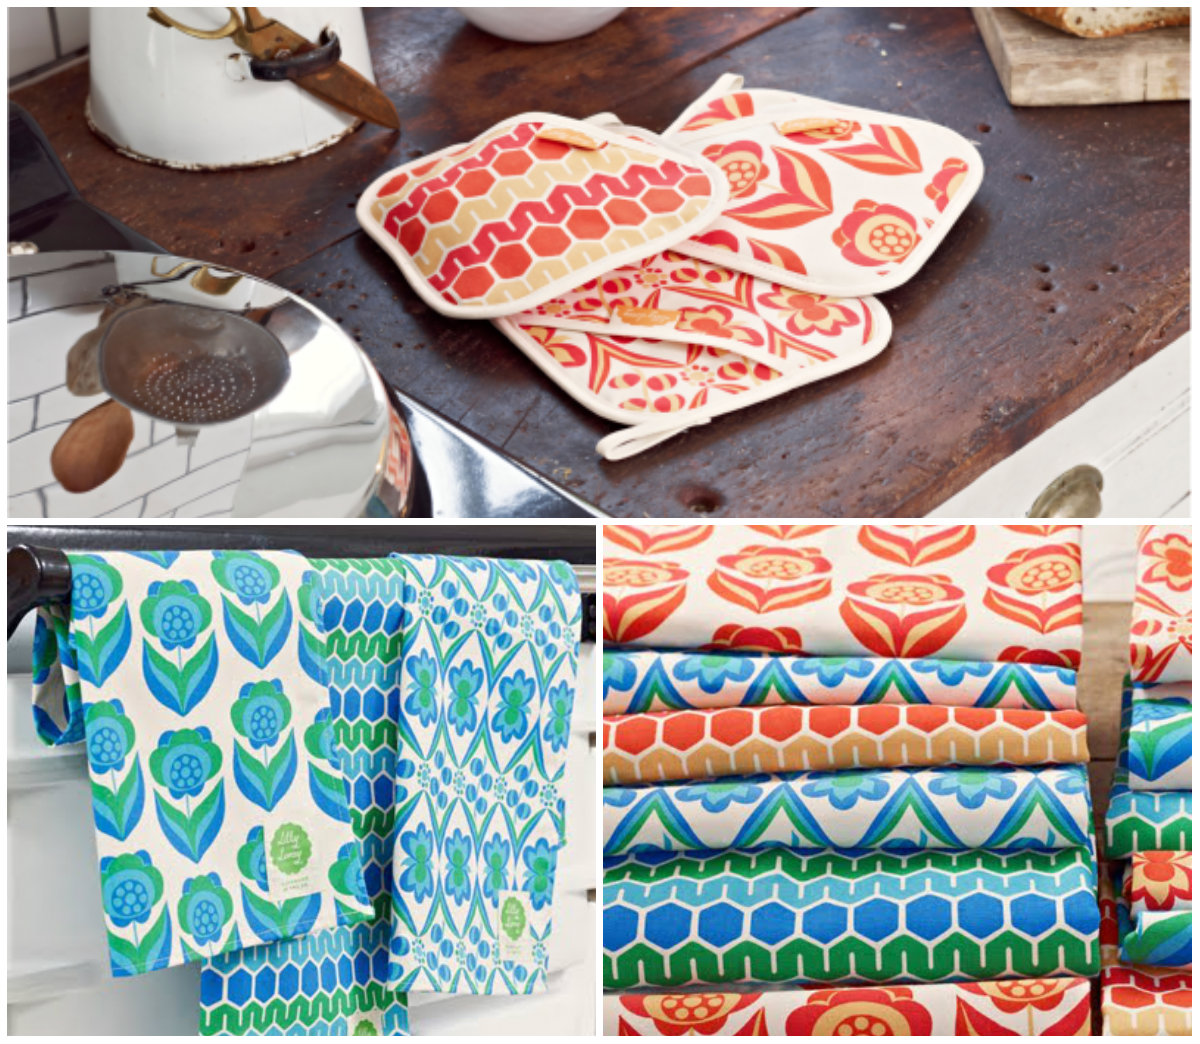 Retro Kitchen Linens: Retro-Oven-Mitts